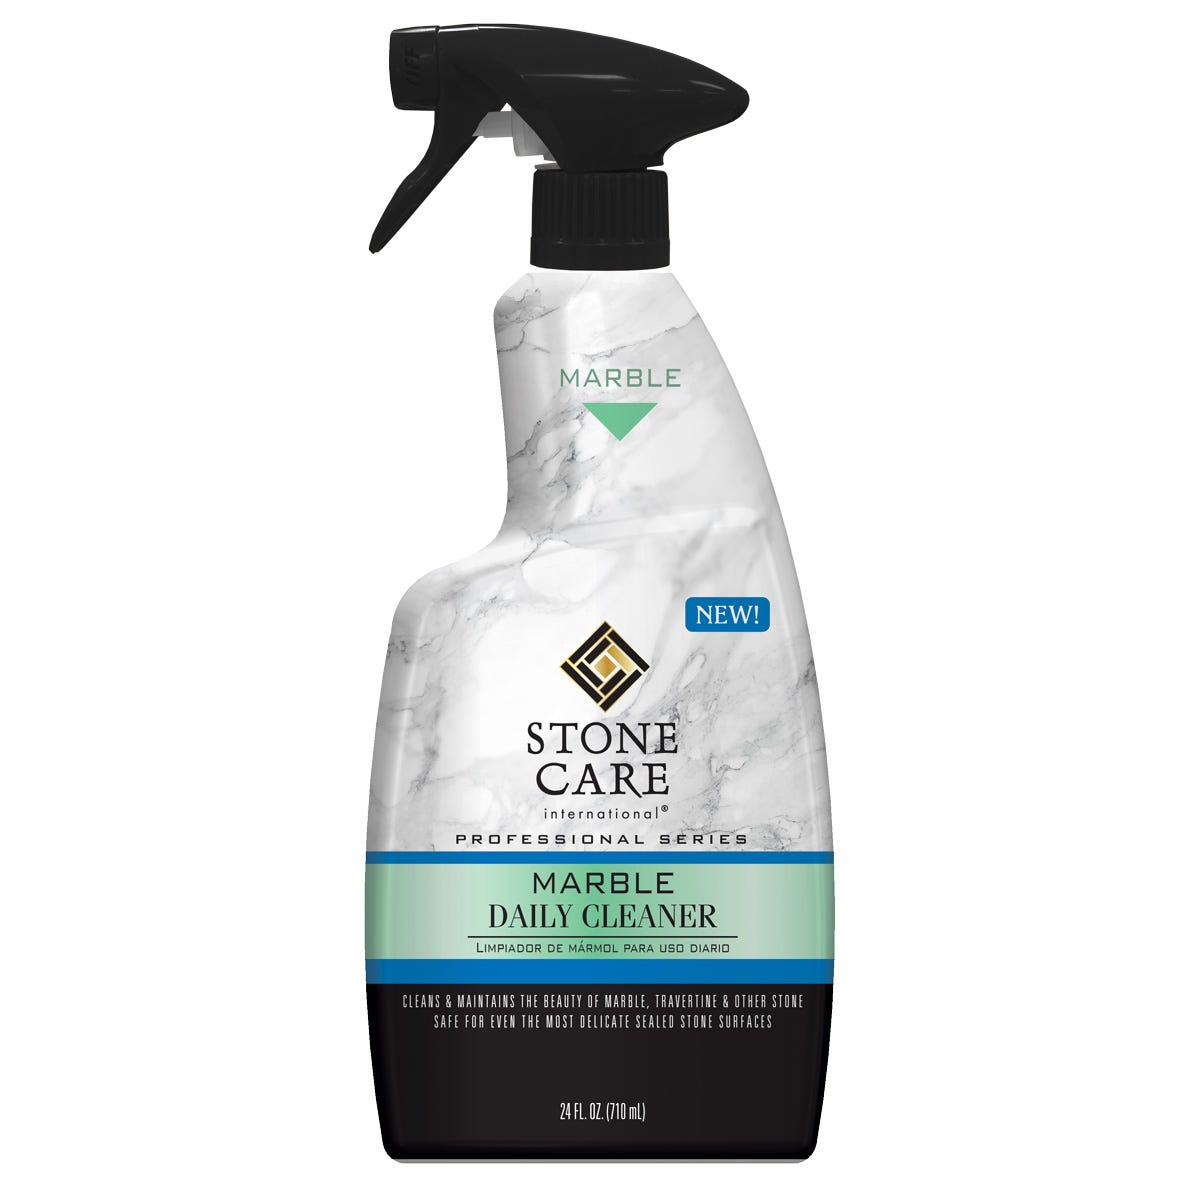 Marble countertop daily cleaner